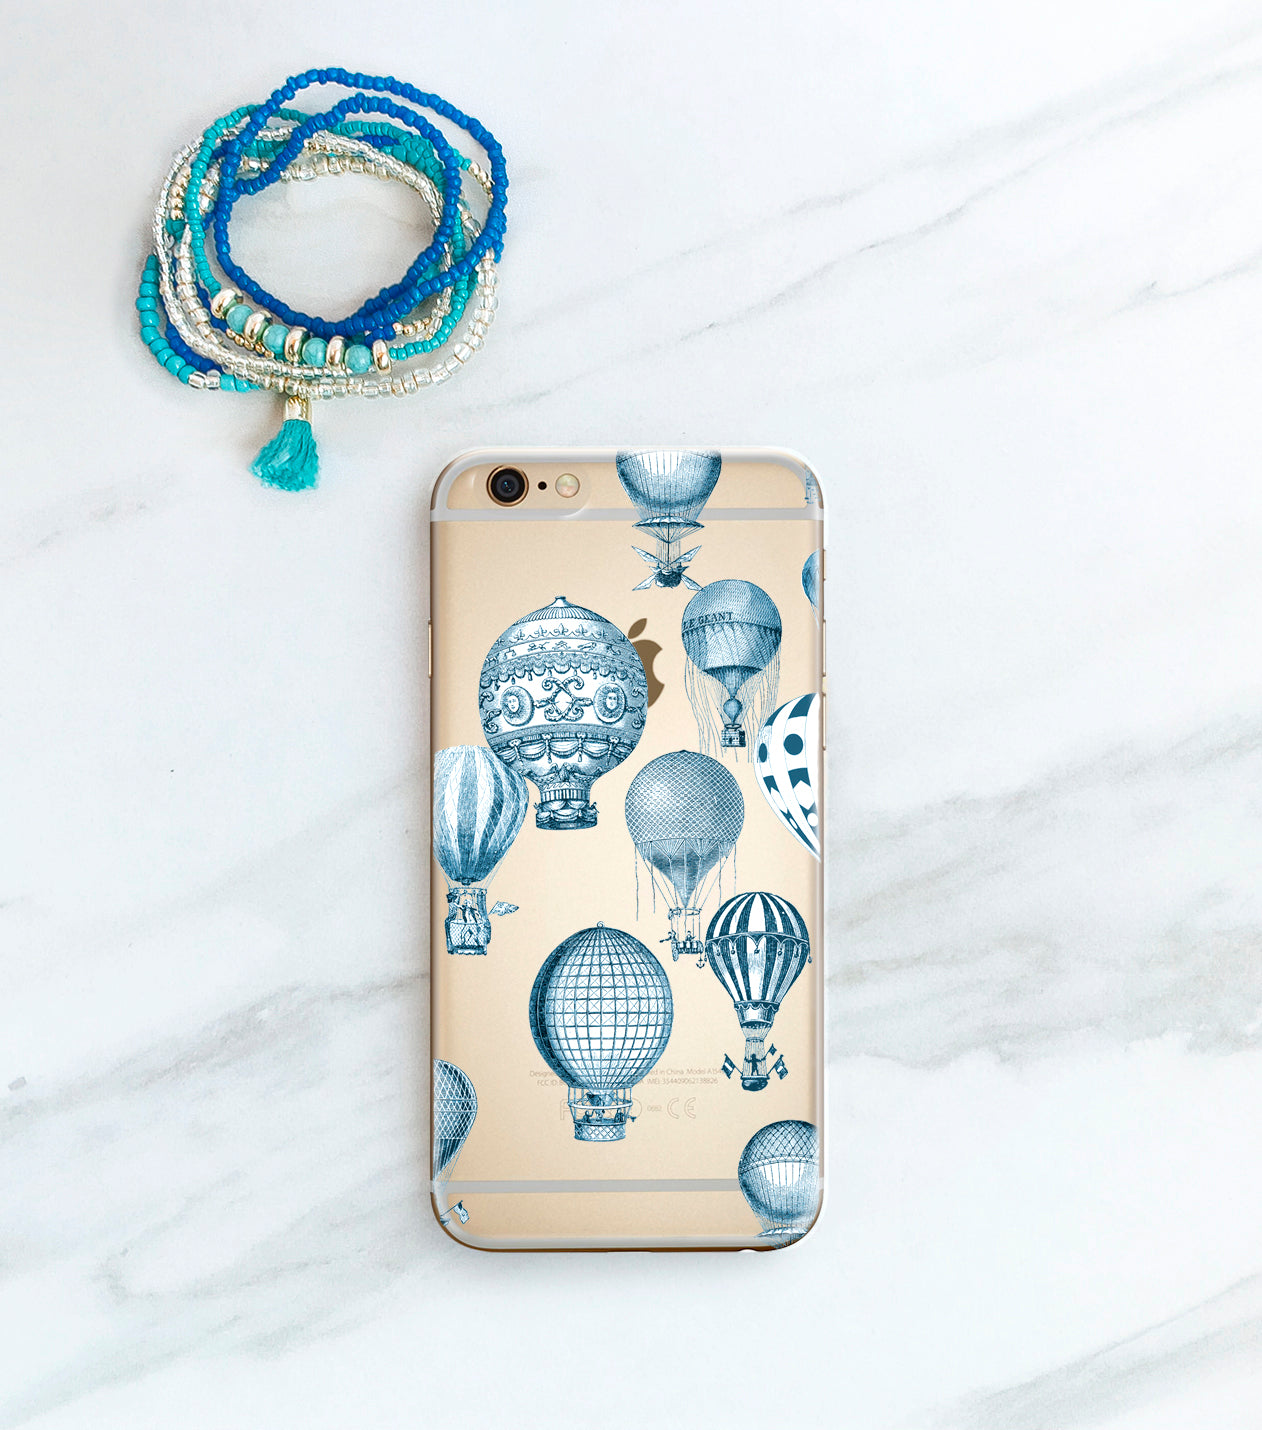 Hot Air Balloons iPhone 7 Plus Case